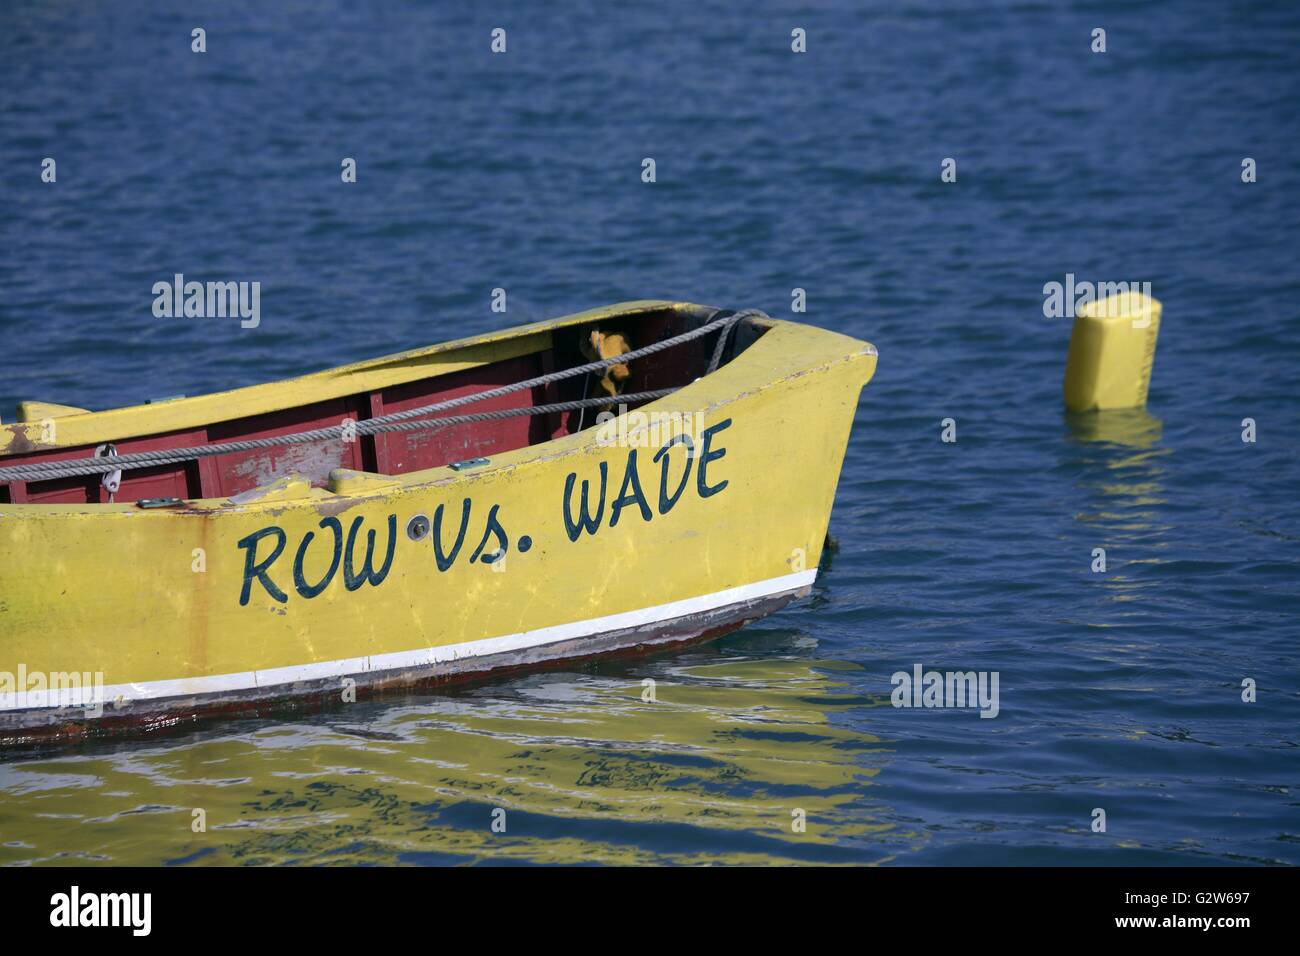 a rowboat tender moored with the name row vs wade in reference to